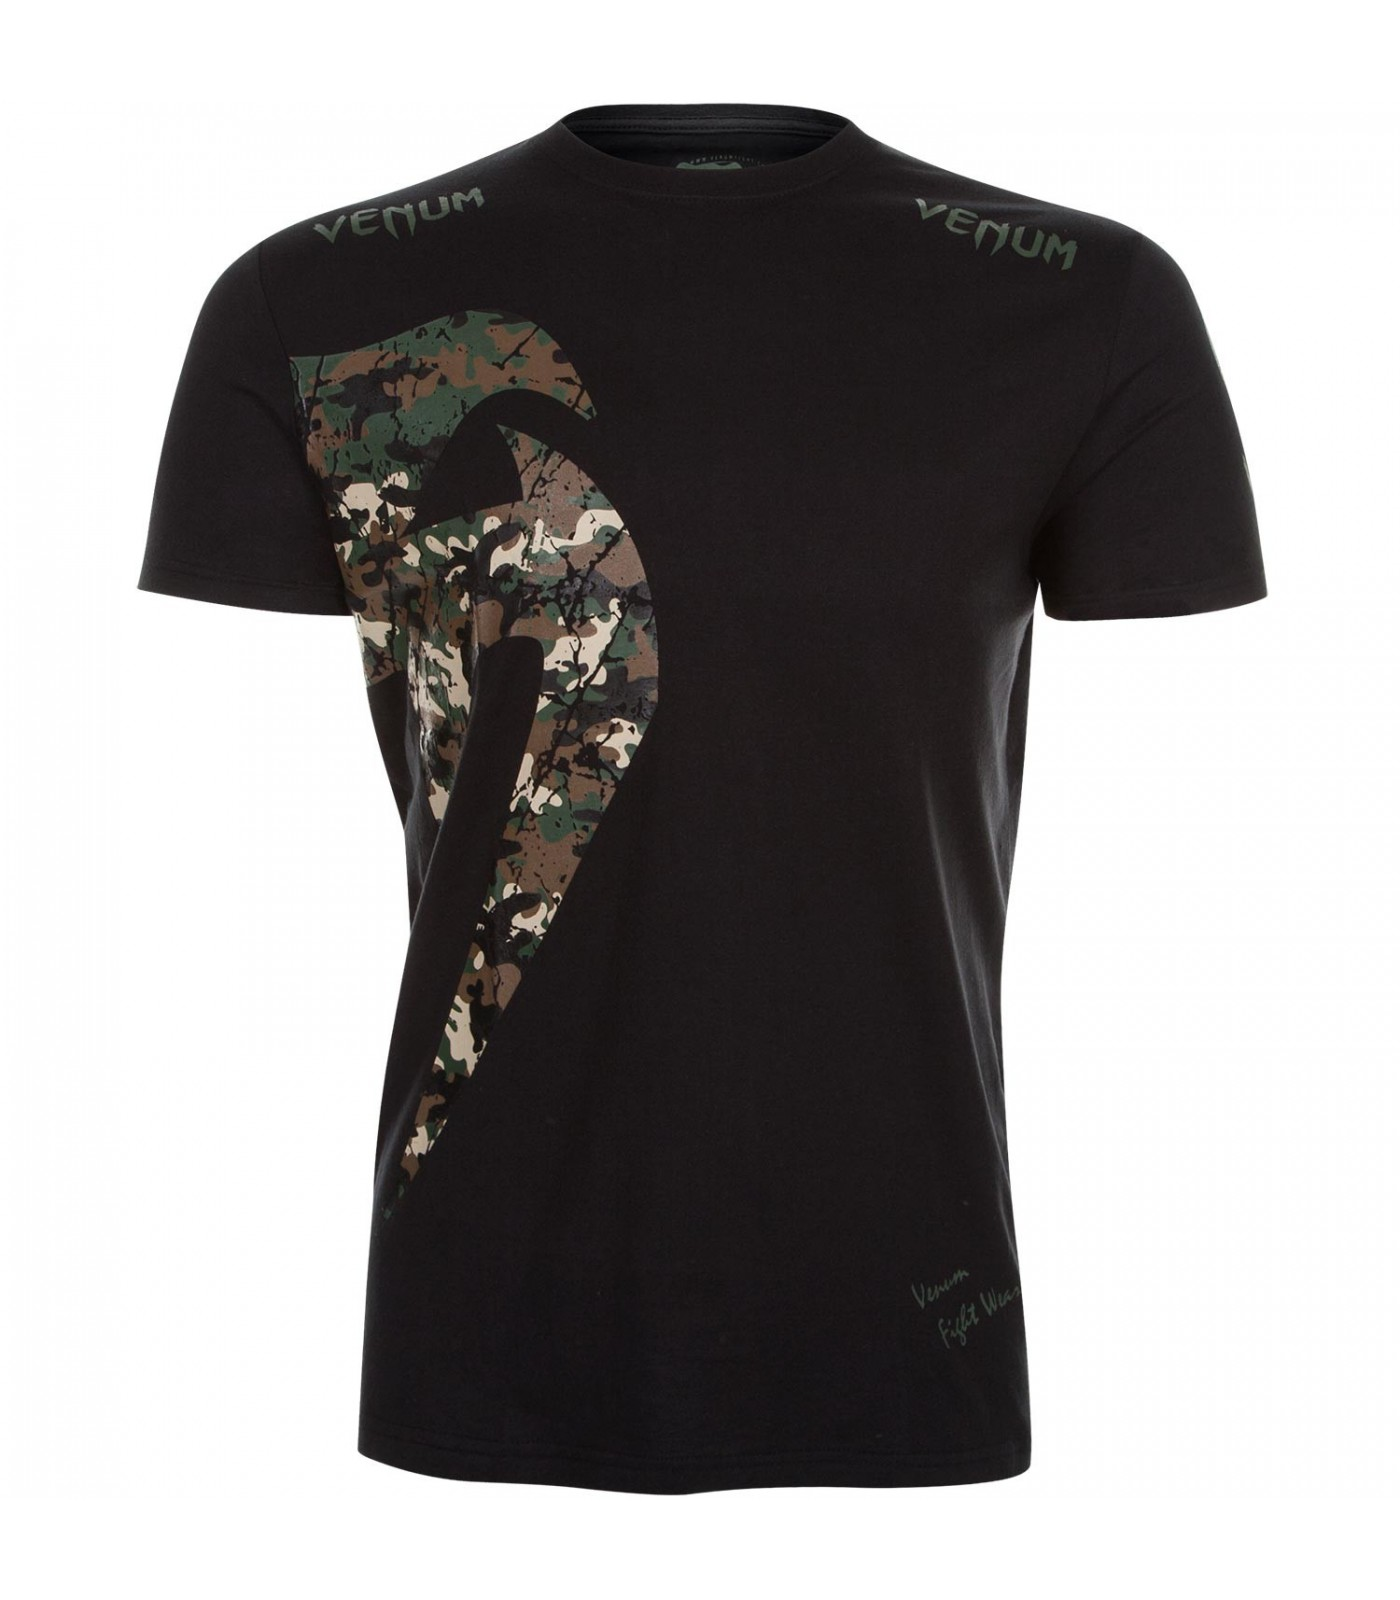 Тениска - VENUM ORIGINAL GIANT T-SHIRT / Jungle Camo Black​